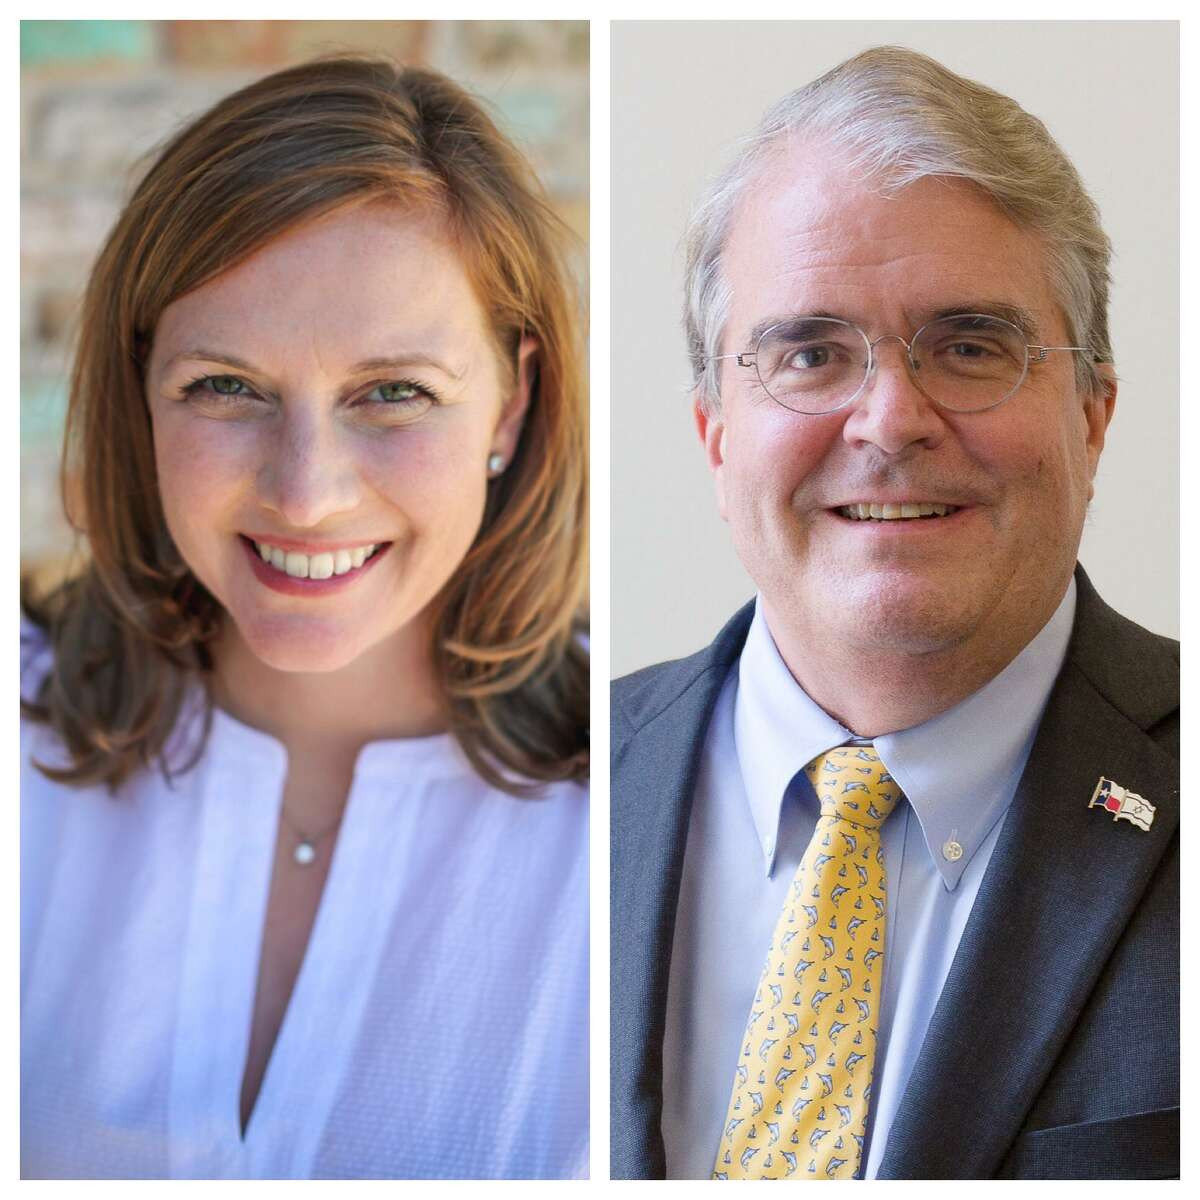 Republican U.S. Rep. John Culberson, right, is facing Democratic challenger Lizzie Fletcher in the Nov. 6, 2018 election for the 7th Congressional District in the Houston area.